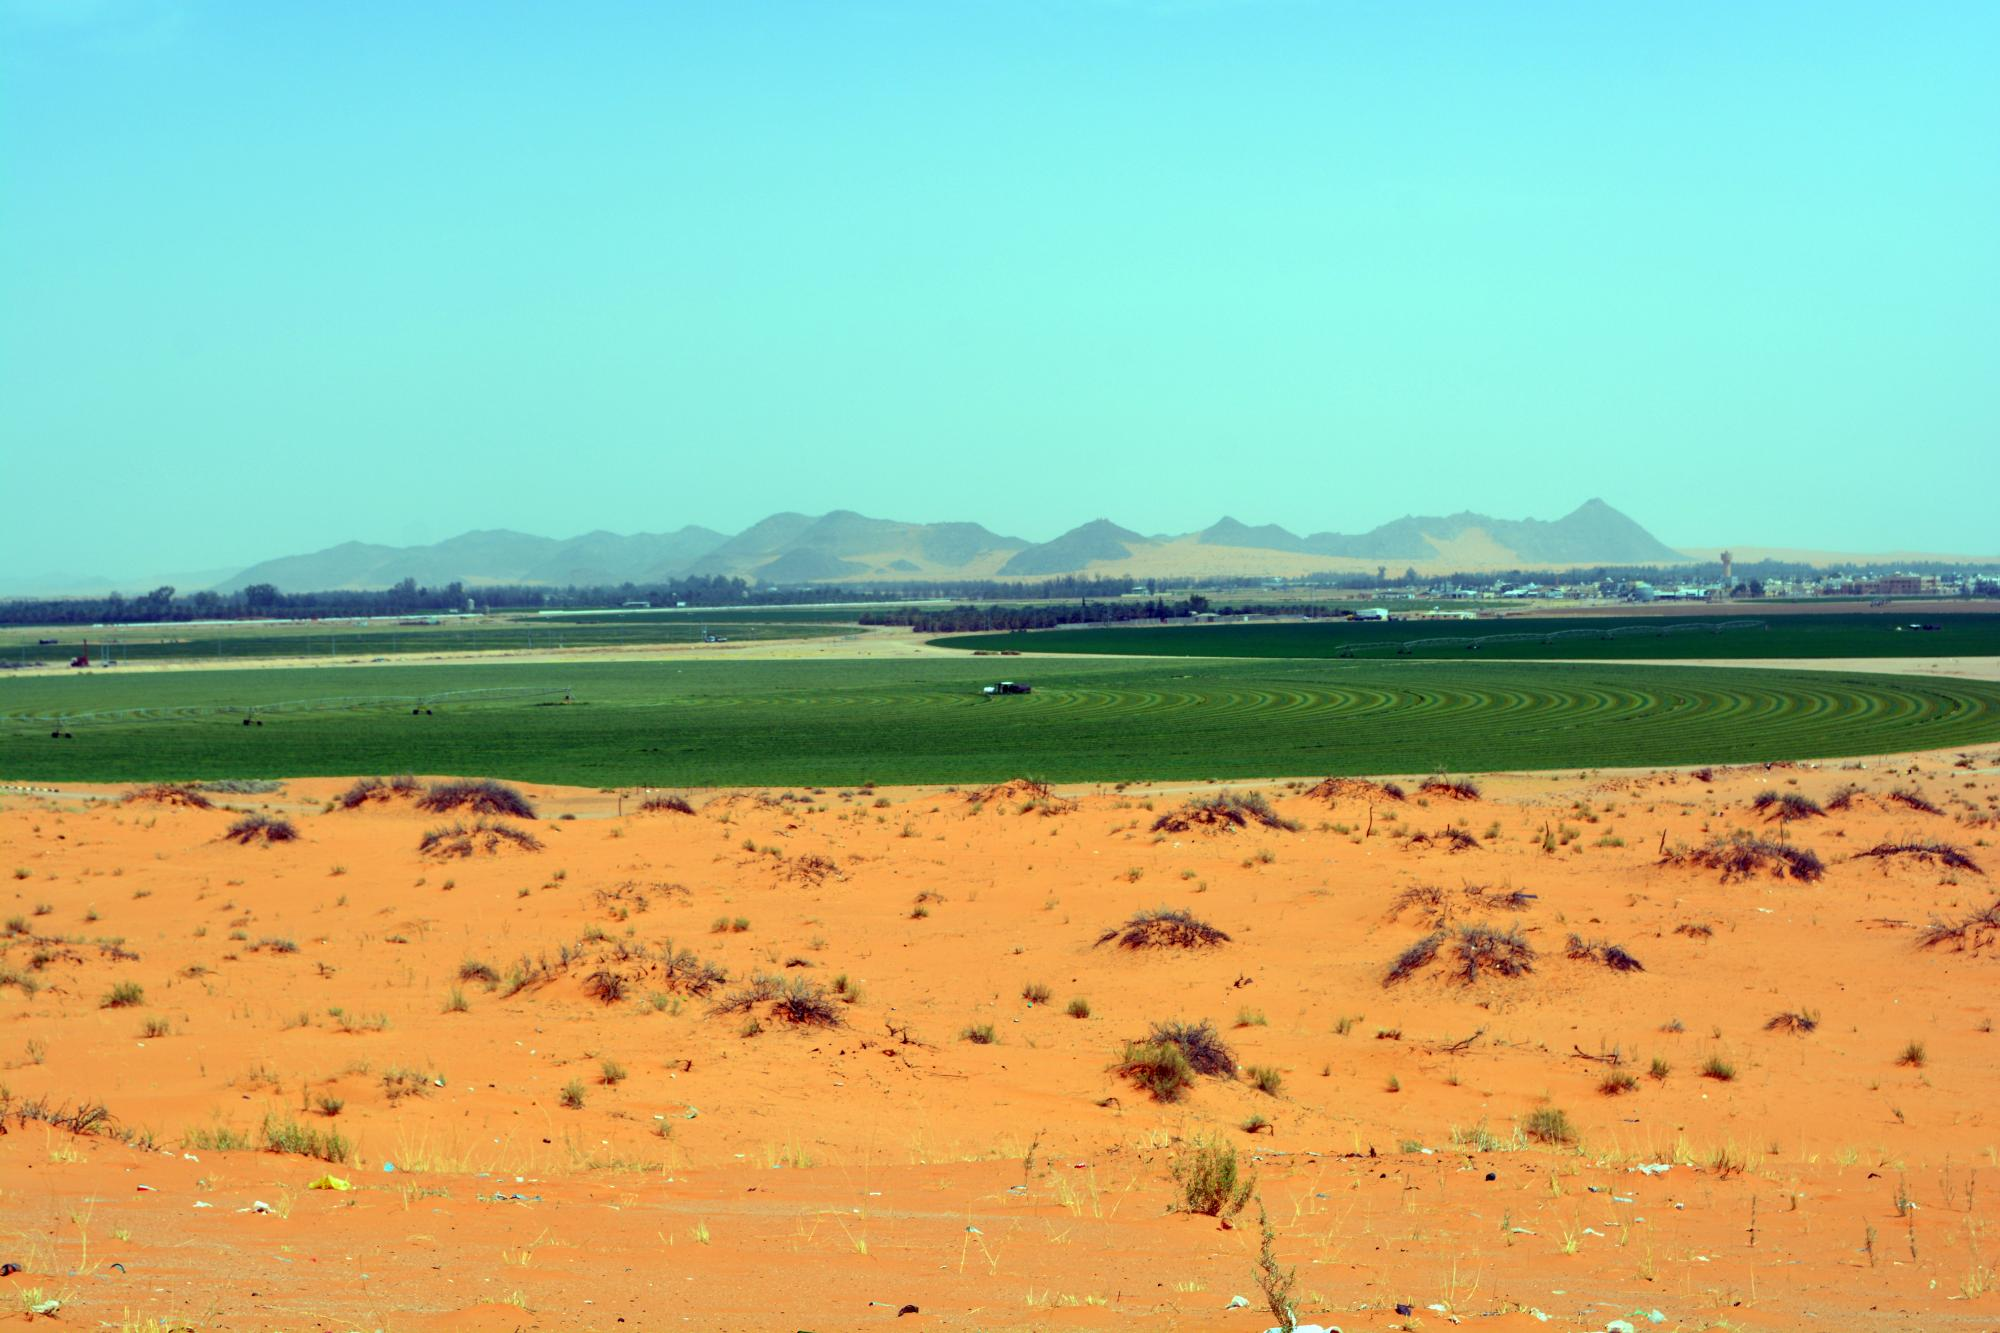 An alfalfa farm in Al-Khitah Village in Ha'il, Saudi Arabia, is cooperating with Ha'il University and the UA in using a mobile phone app providing same-day data on prices of farm produce in Hail and in the central agricultural auction markets in the kingd